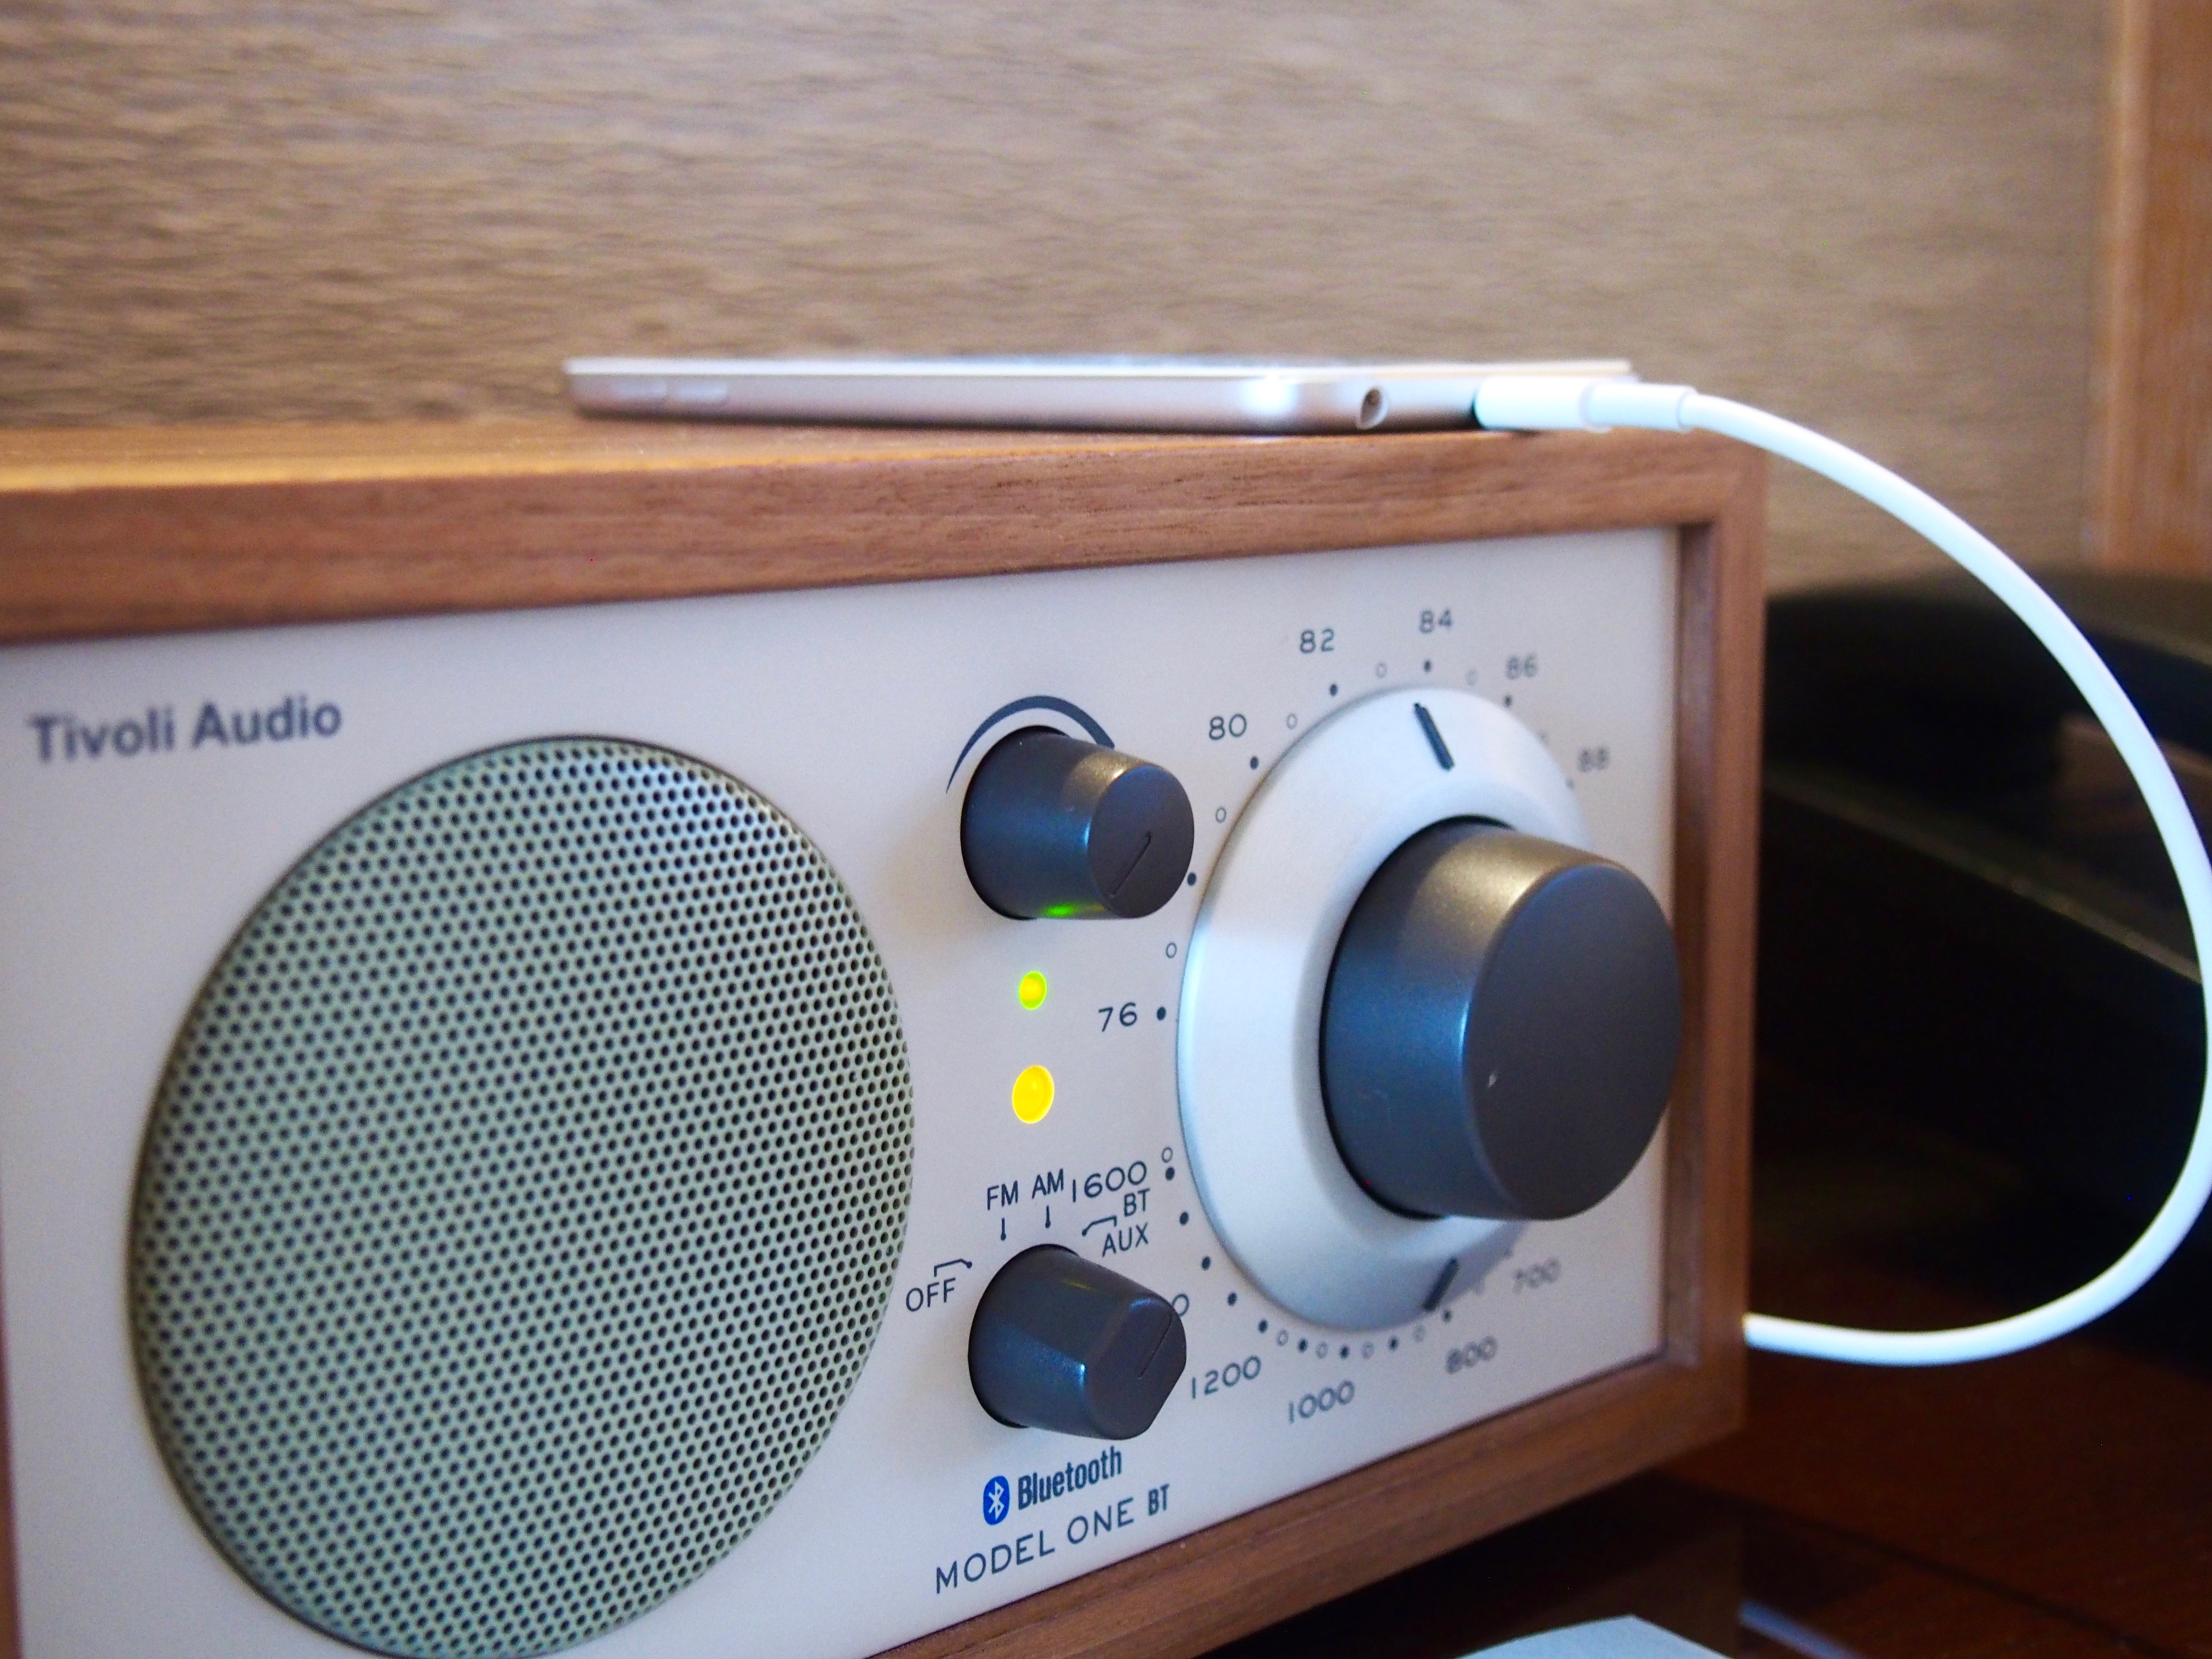 The radio with bluetooth capability and pre loaded jazz playlists on the iPod